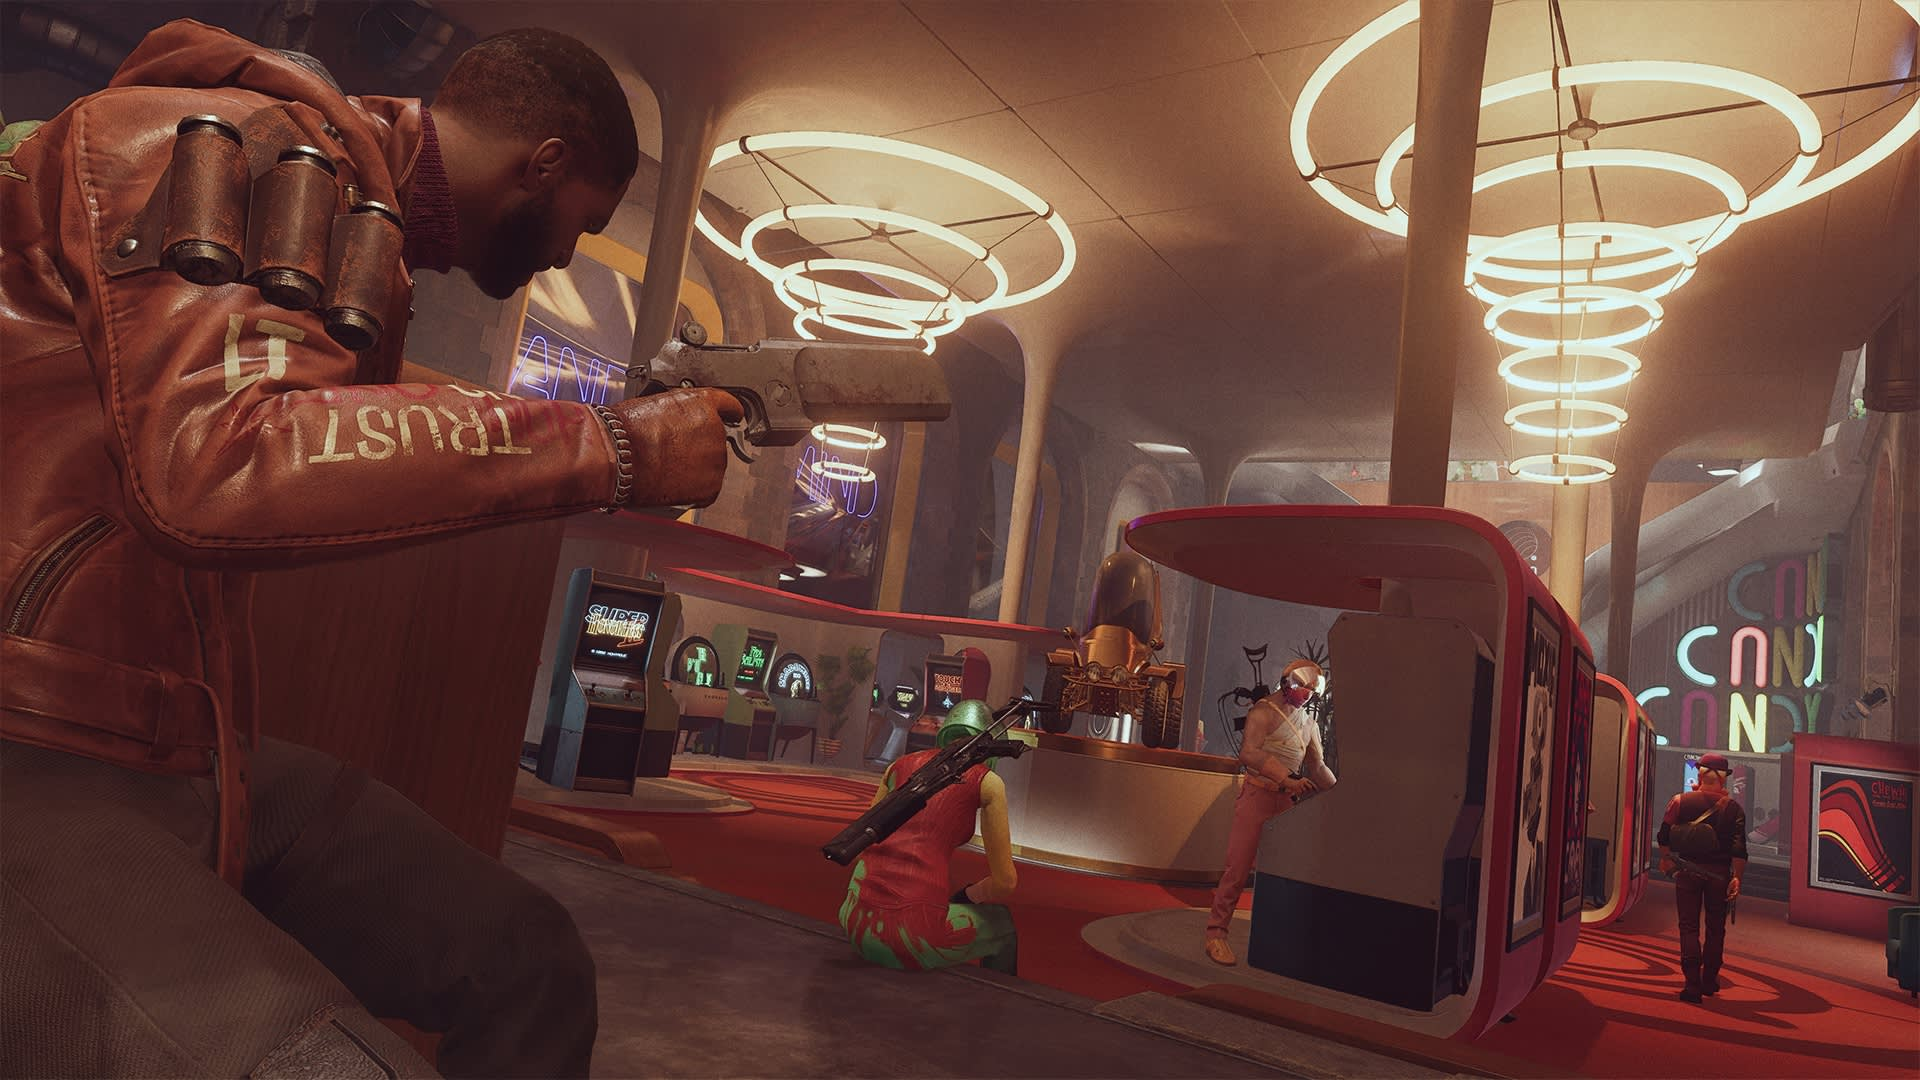 Deathloop Screenshot. Colt stealthily approaches a group of mask-wearing enemies in a sylized 1960s inspired arcade.